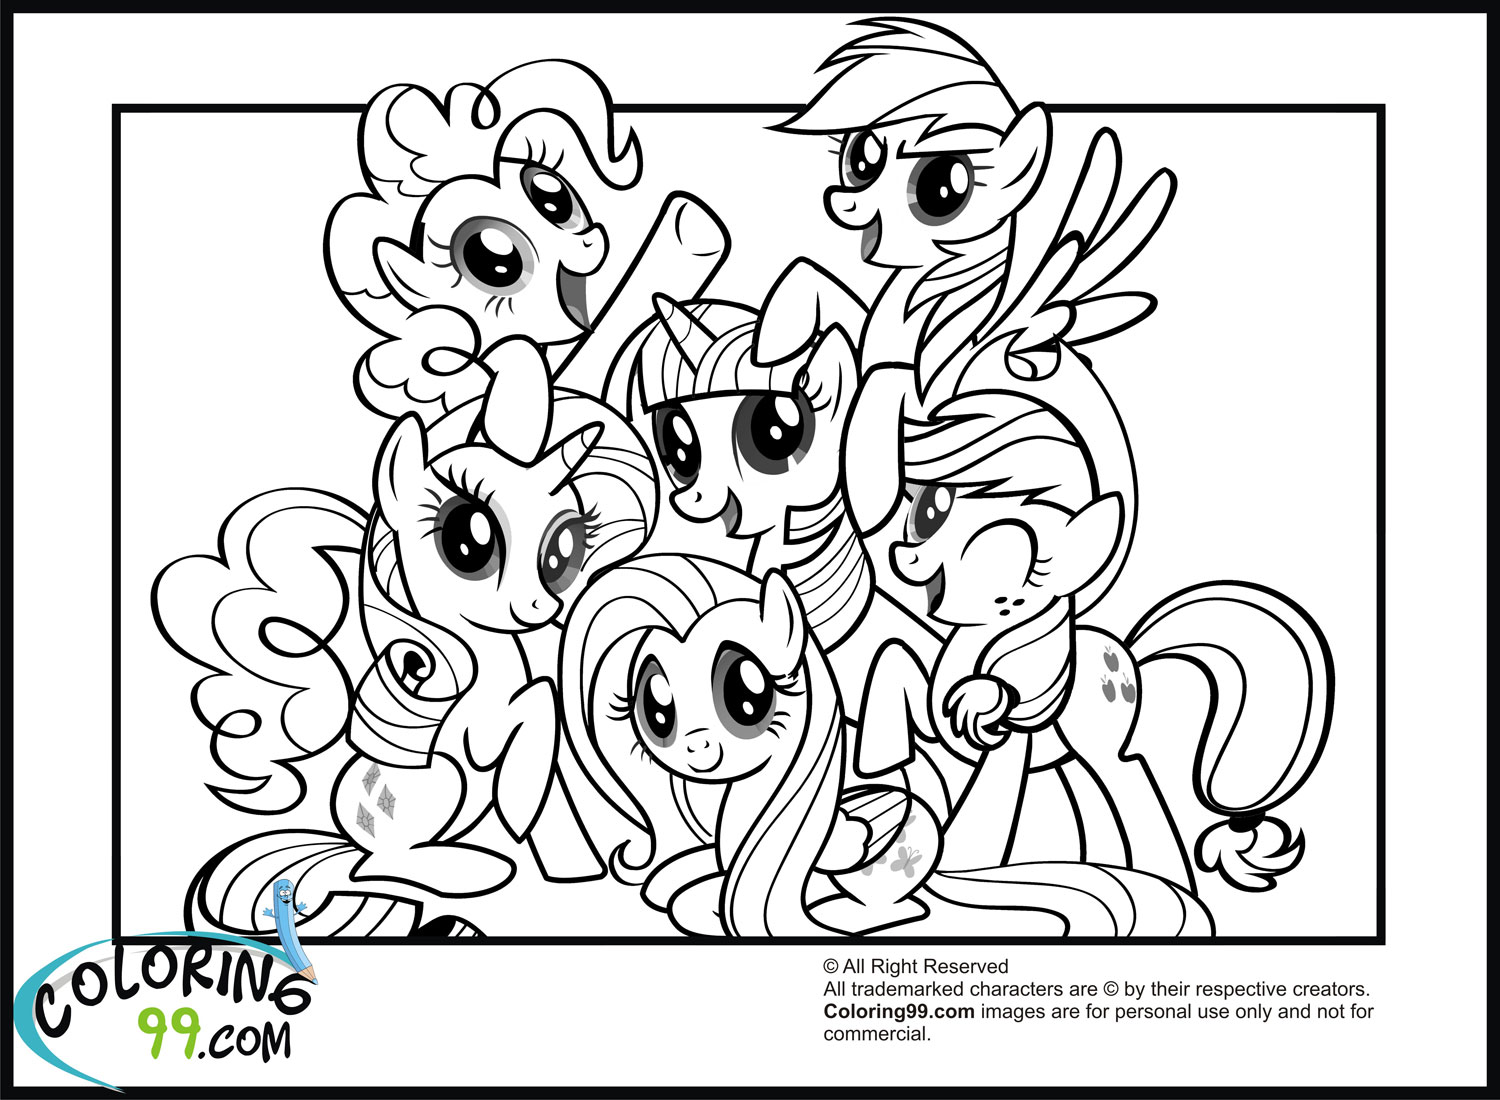 6 Images of My Little Pony Printable Cards To Color